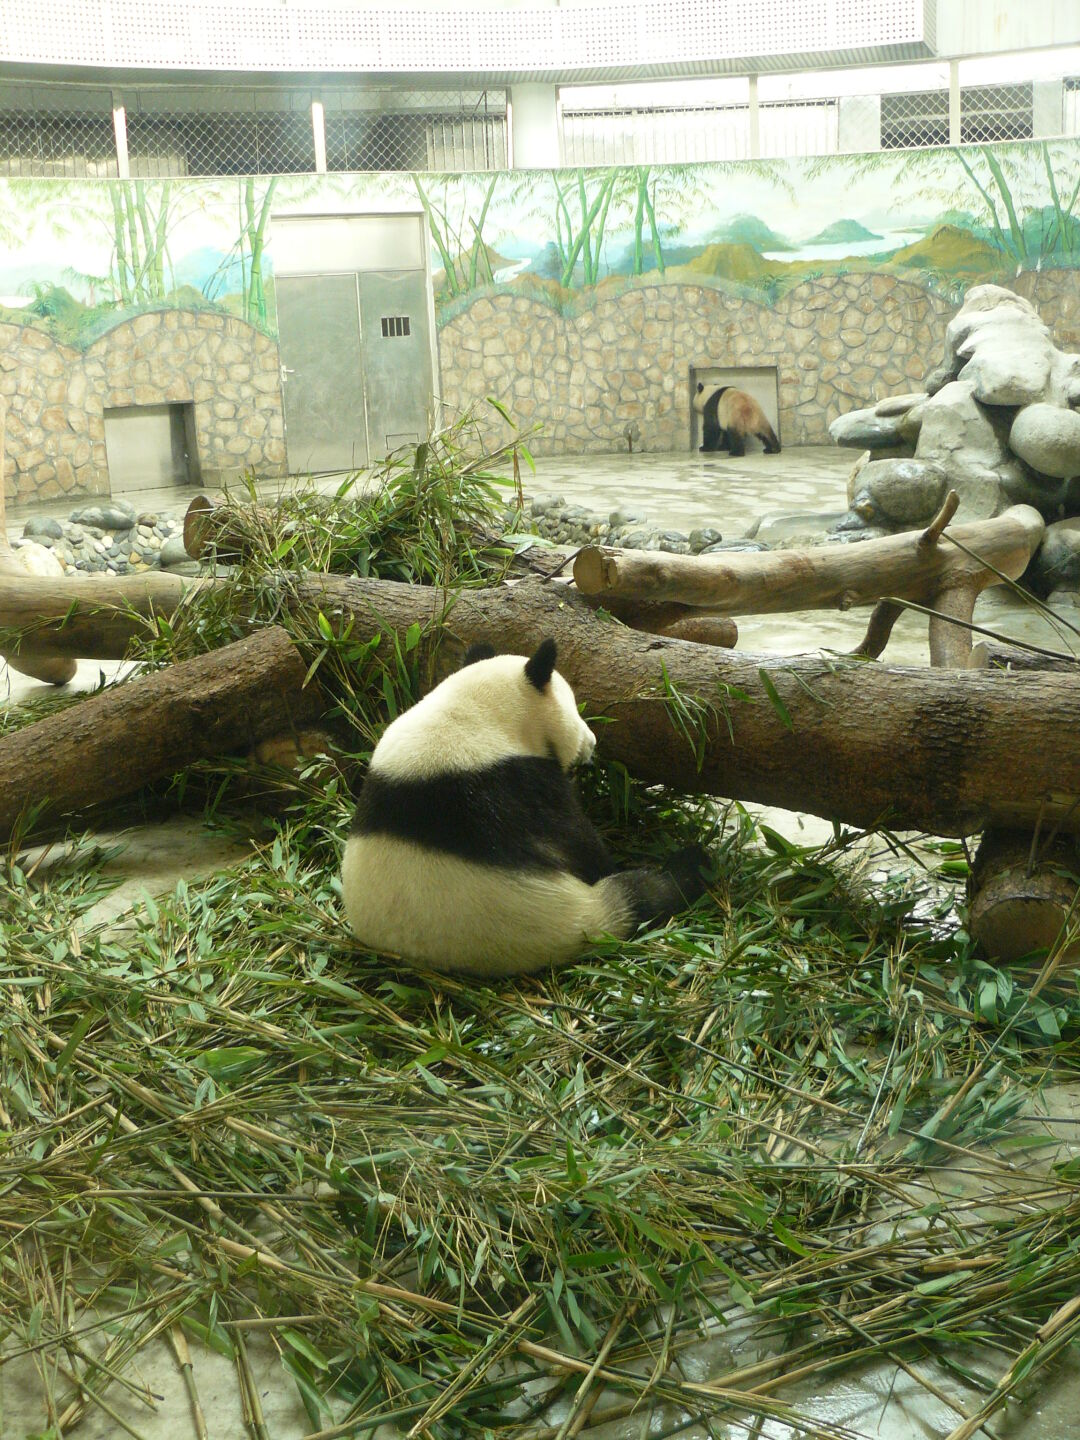 Eating bamboo.